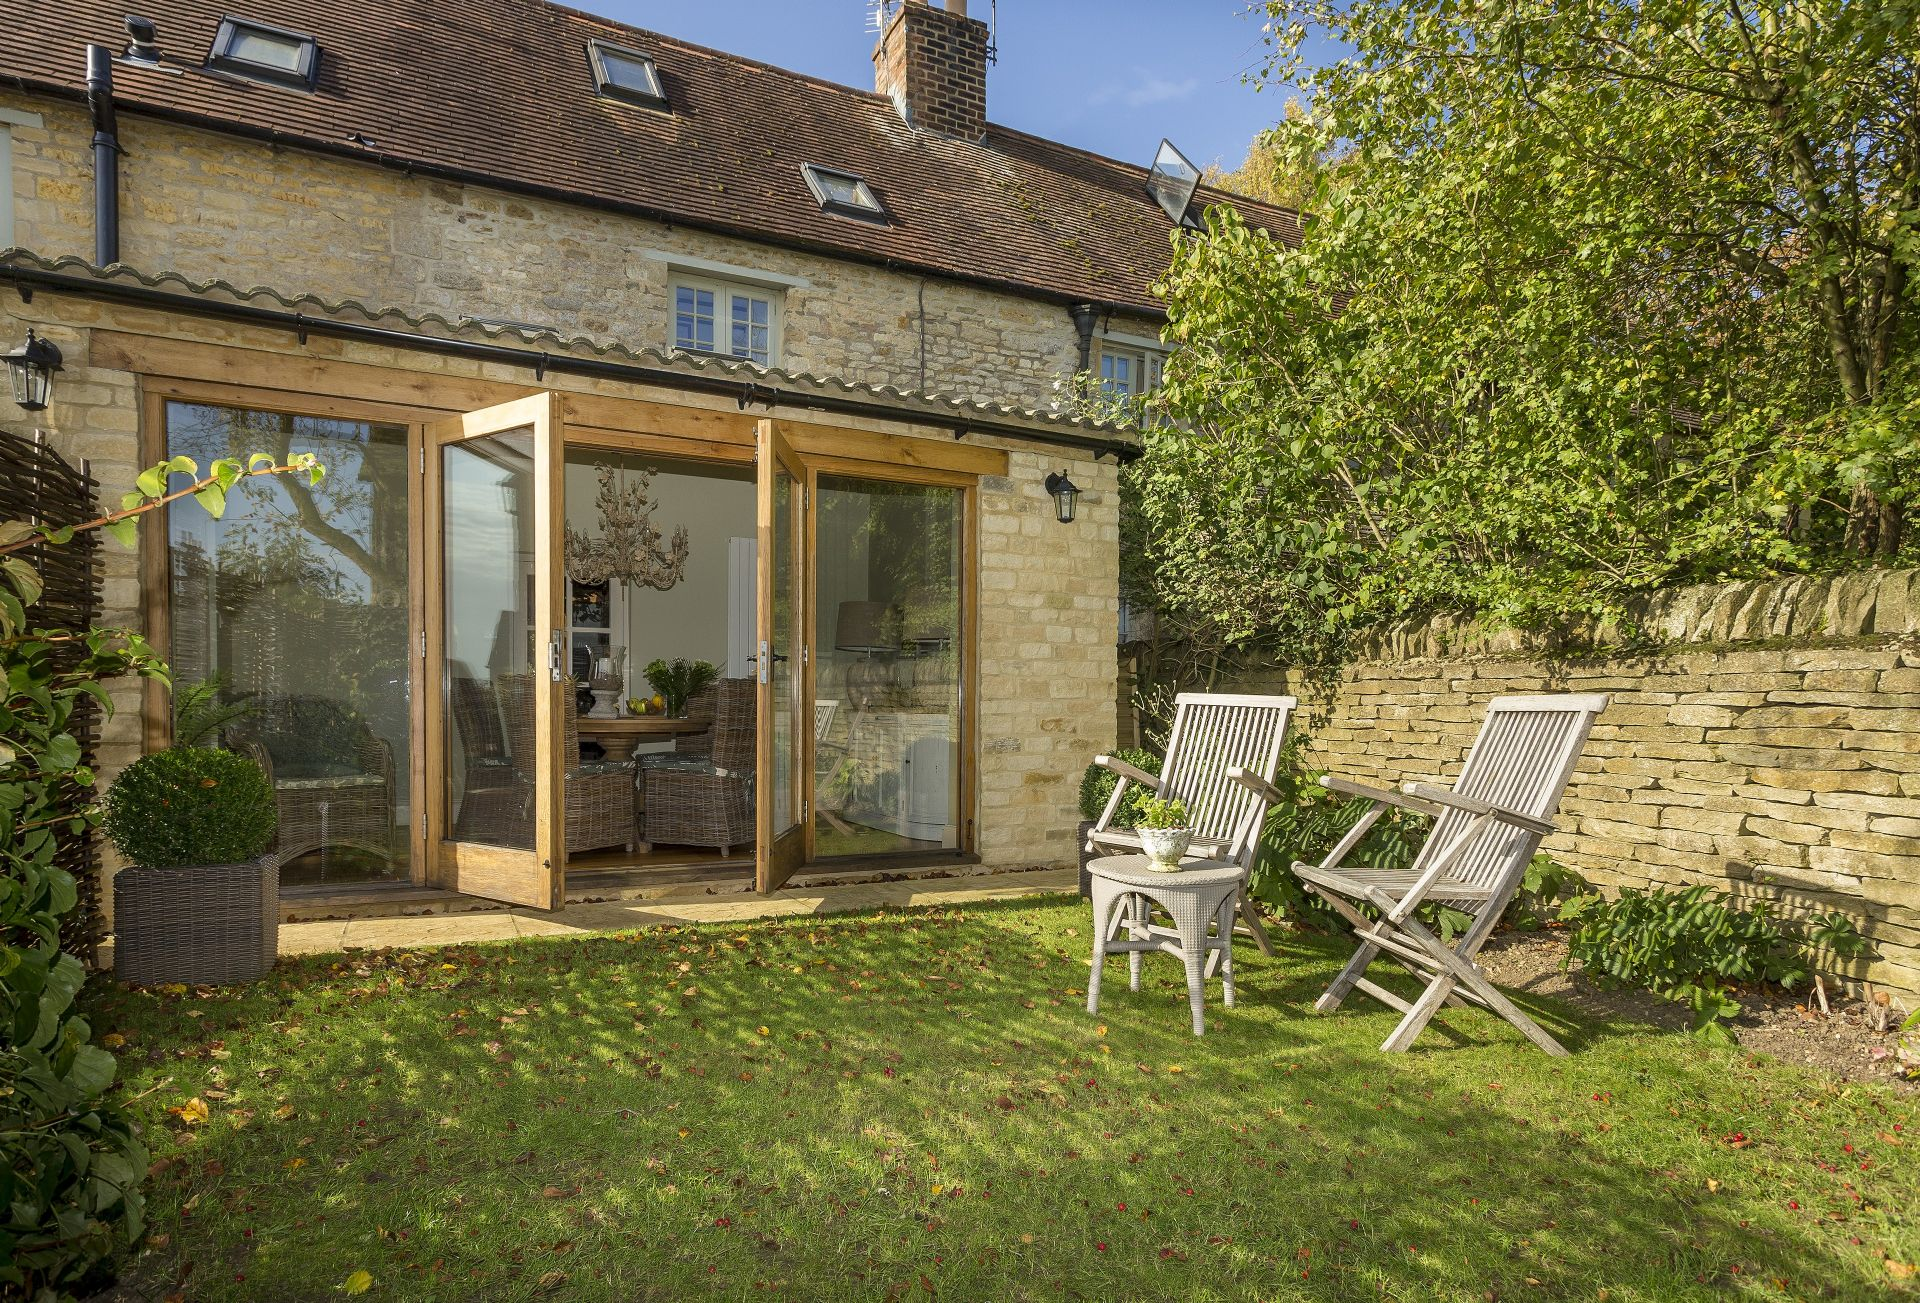 The garden room to the rear of the cottage opens onto a private patio and enclosed garden